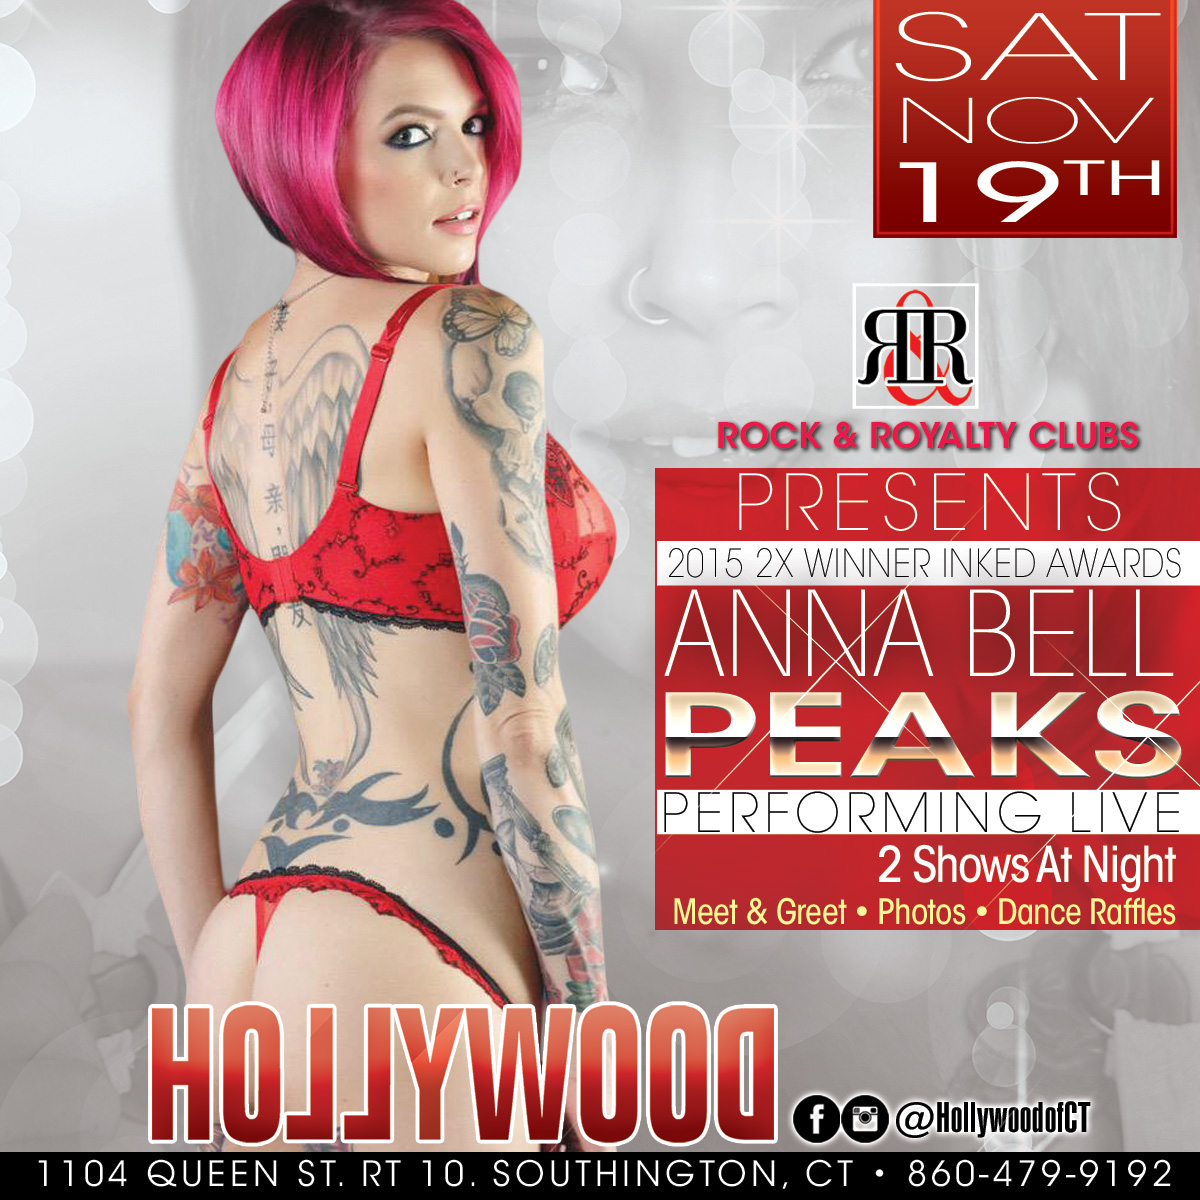 Porn Star Anna Bell Peaks | Hollywood  Strip Club Connecticut